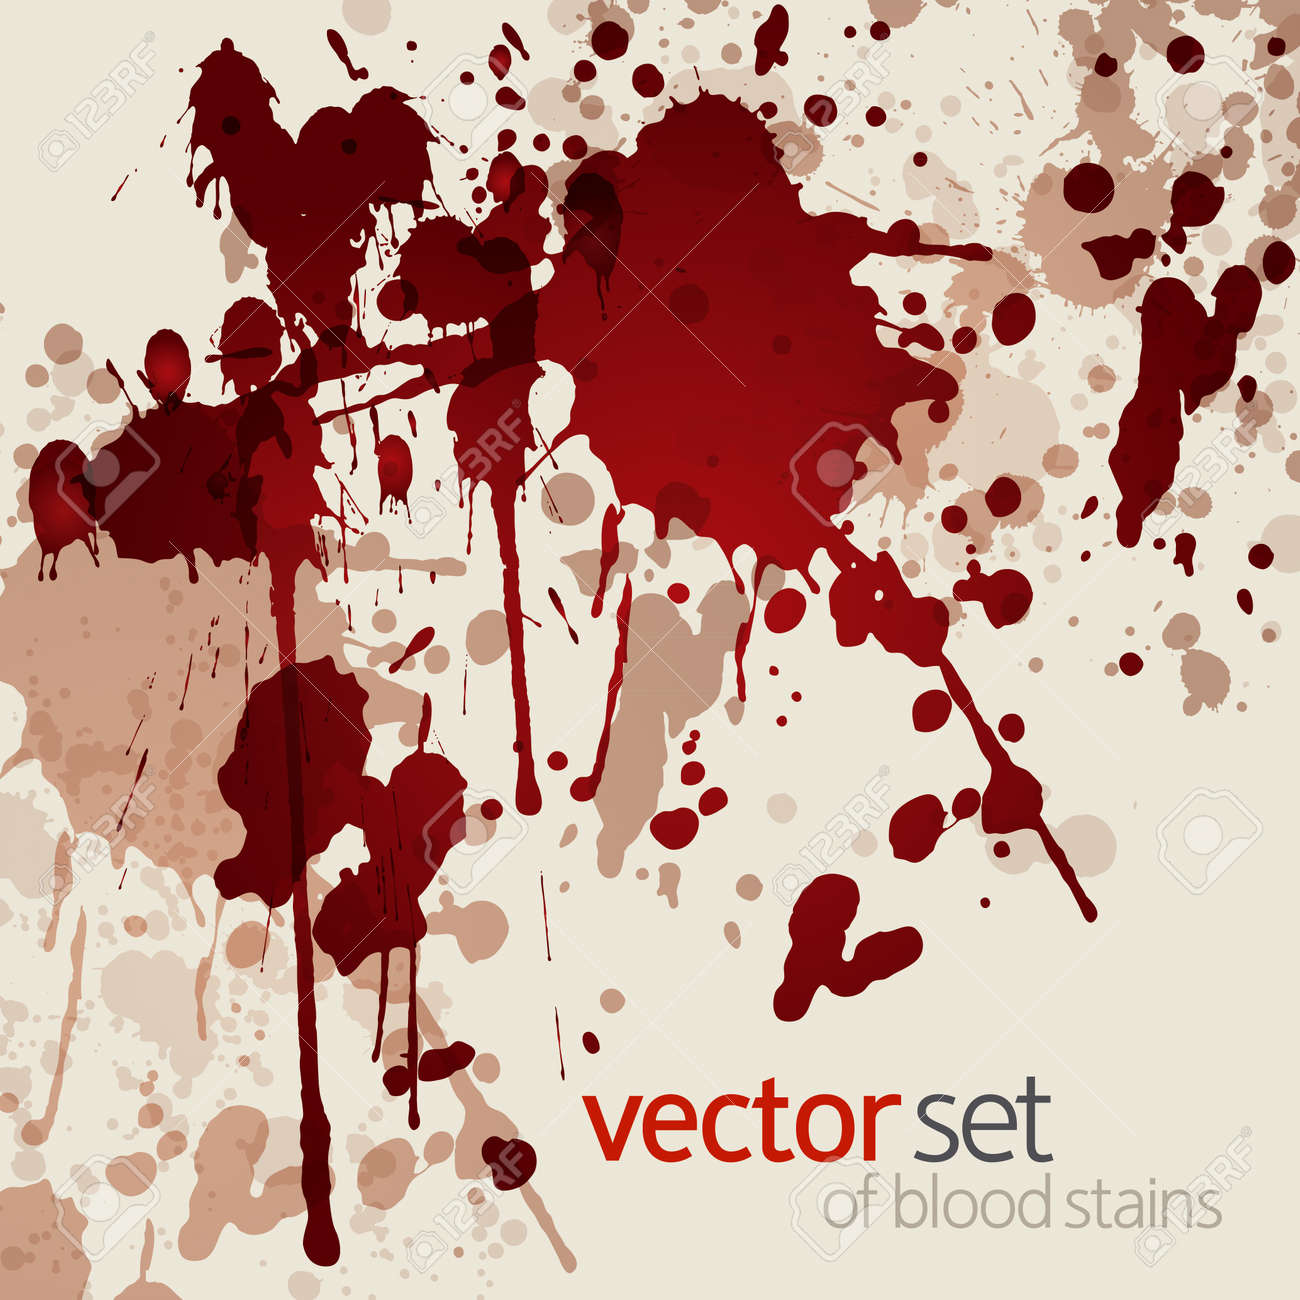 Blood stains, vector illustration - 19116701